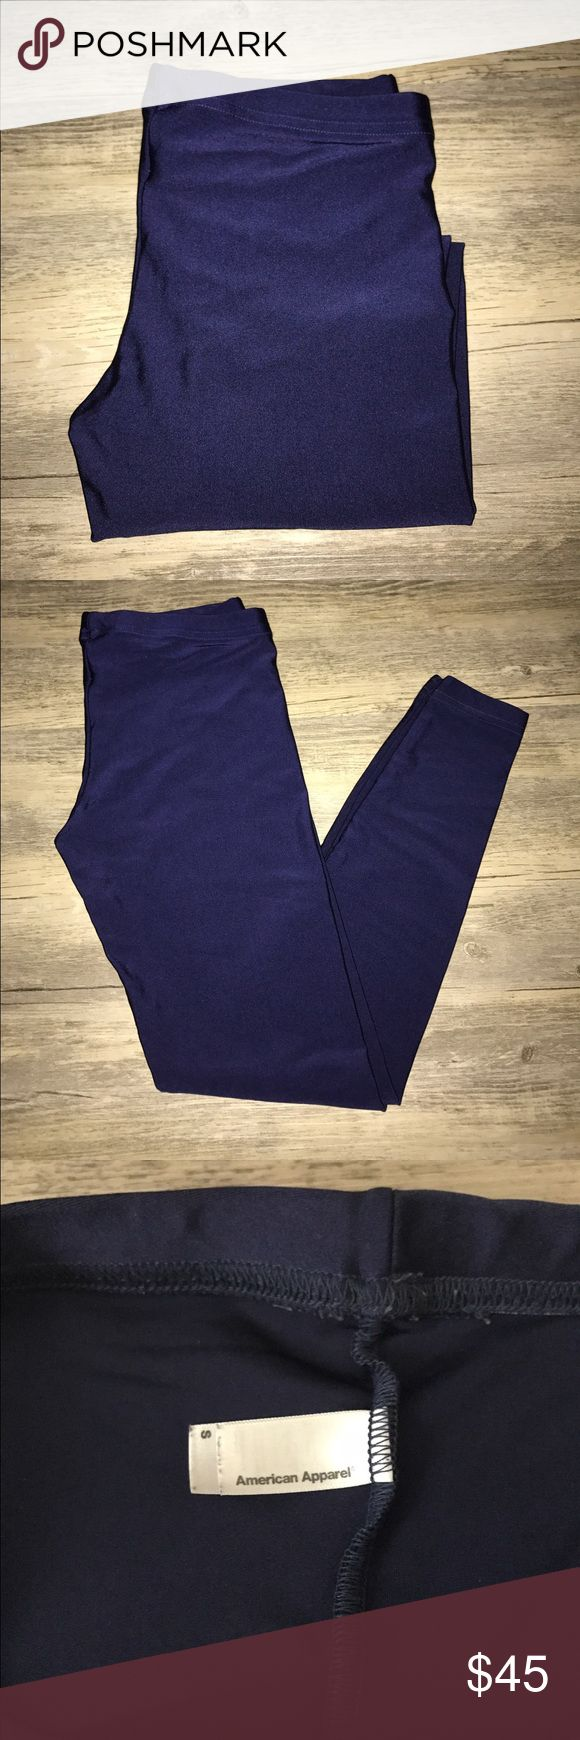 AMERICAN APPAREL RETRO DISCO PANTS ELECTRIC BLUE AMERICAN APPAREL RETRO DISCO PANTS SHINY ELECTRIC BLUE SZ:S! GREAT CONDITION, WORN ONCE‼️‼️ NO TRADES‼️ AS IS‼️‼️ FINAL SALE‼️ American Apparel Pants Leggings